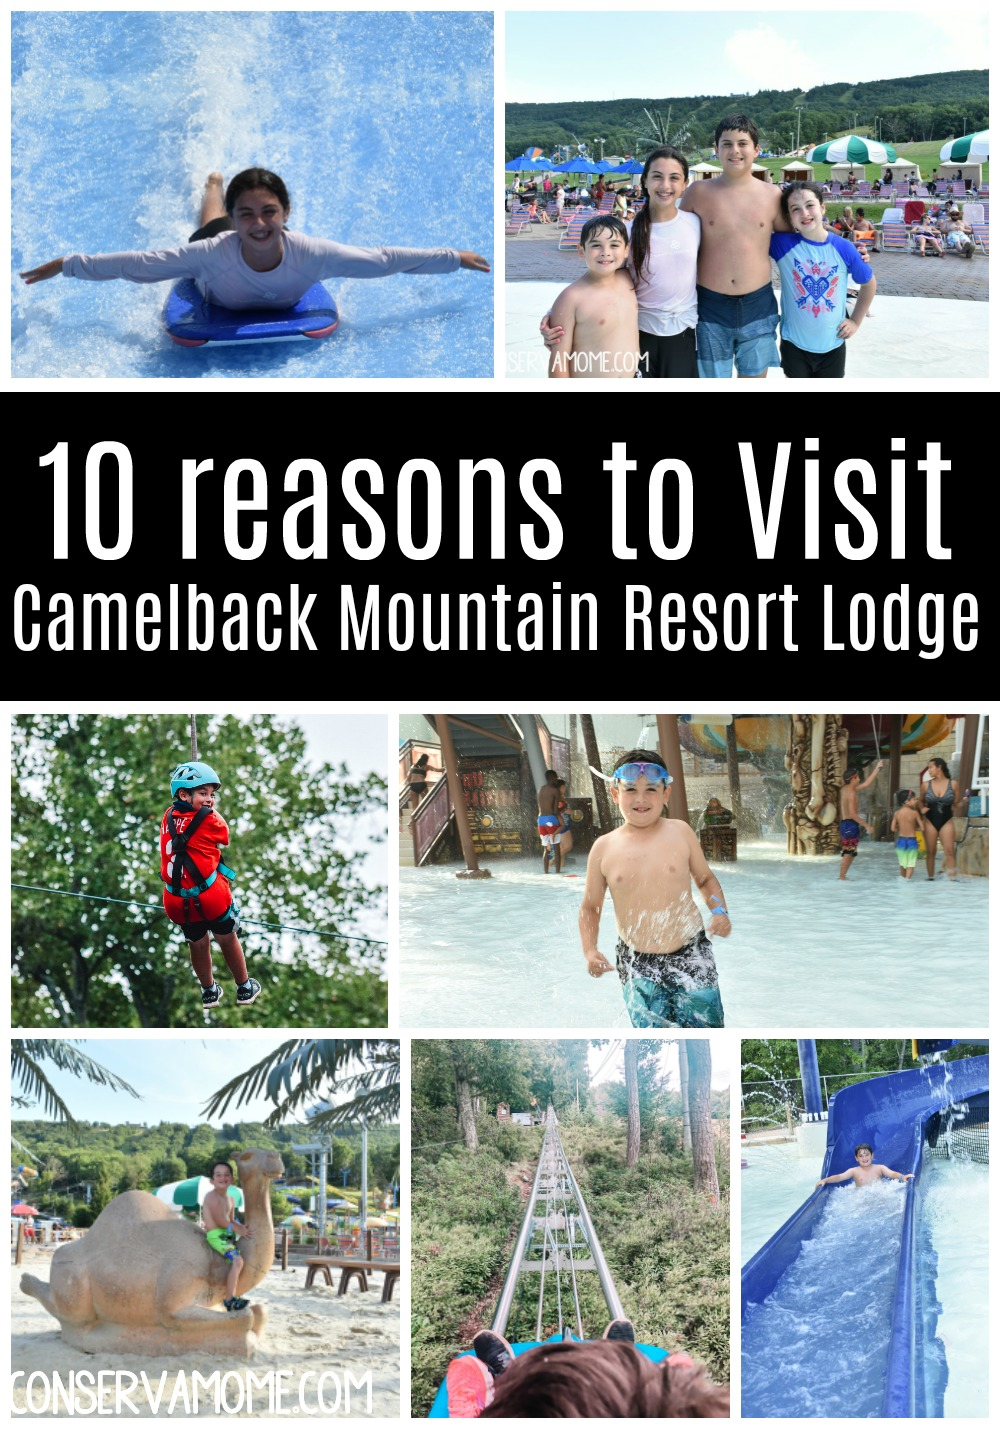 10 reasons to Visit Camelback Mountain Resort Lodge in the Poconos